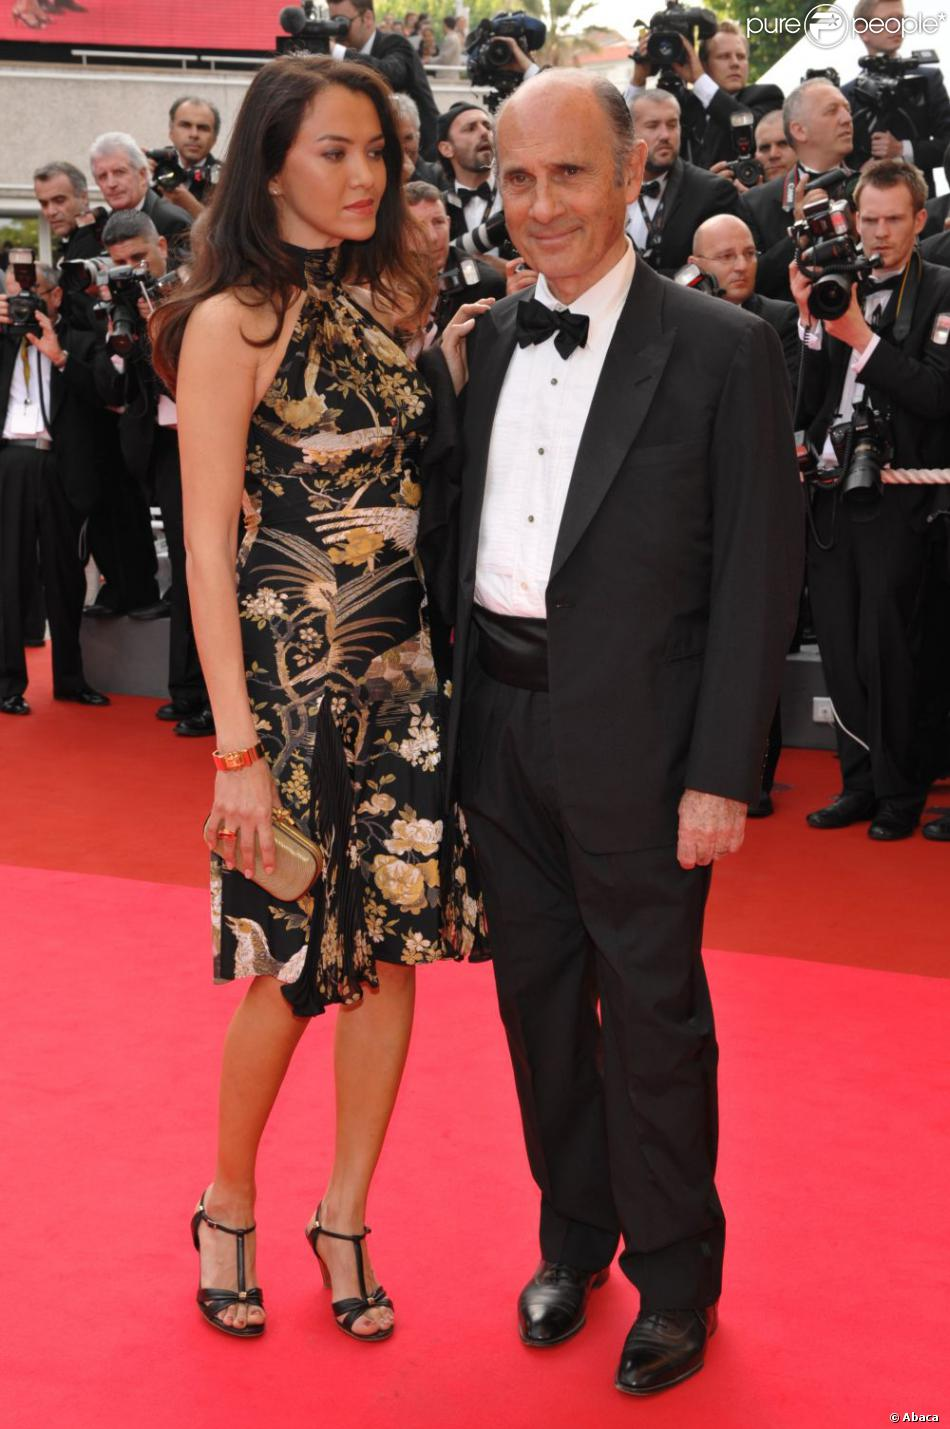 Guy Marchand Et Sa Femme : marchand, femme, Marchand, Femme, Adelina,, Festival, Cannes,, 2008., Purepeople